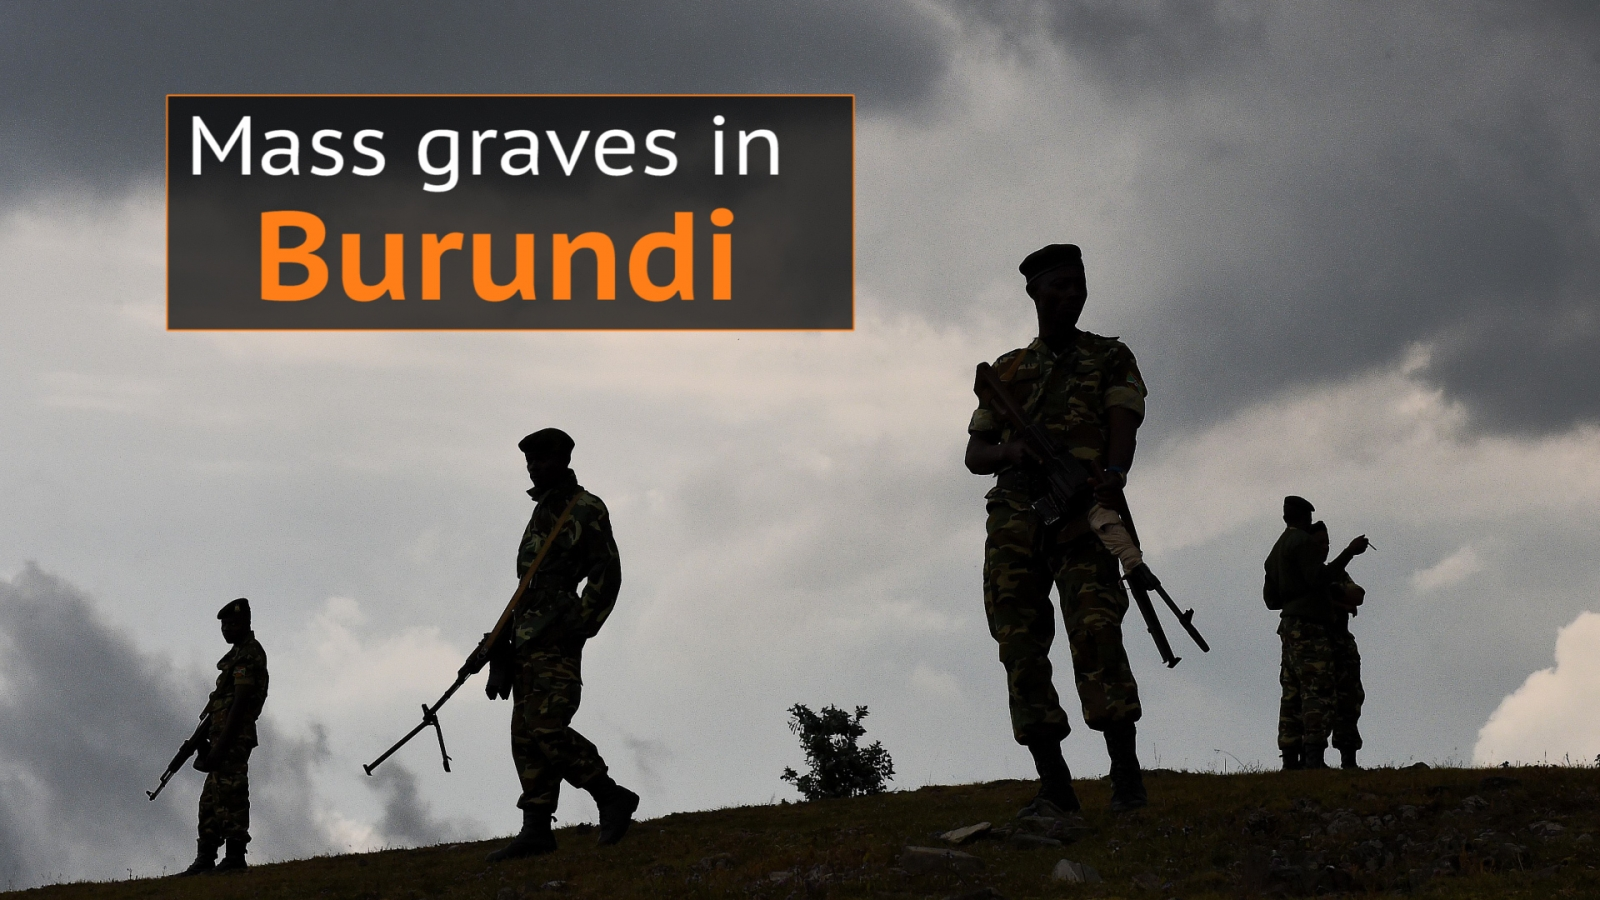 Burundi: Rights group claims to have discovered at least 14 mass graves across the country